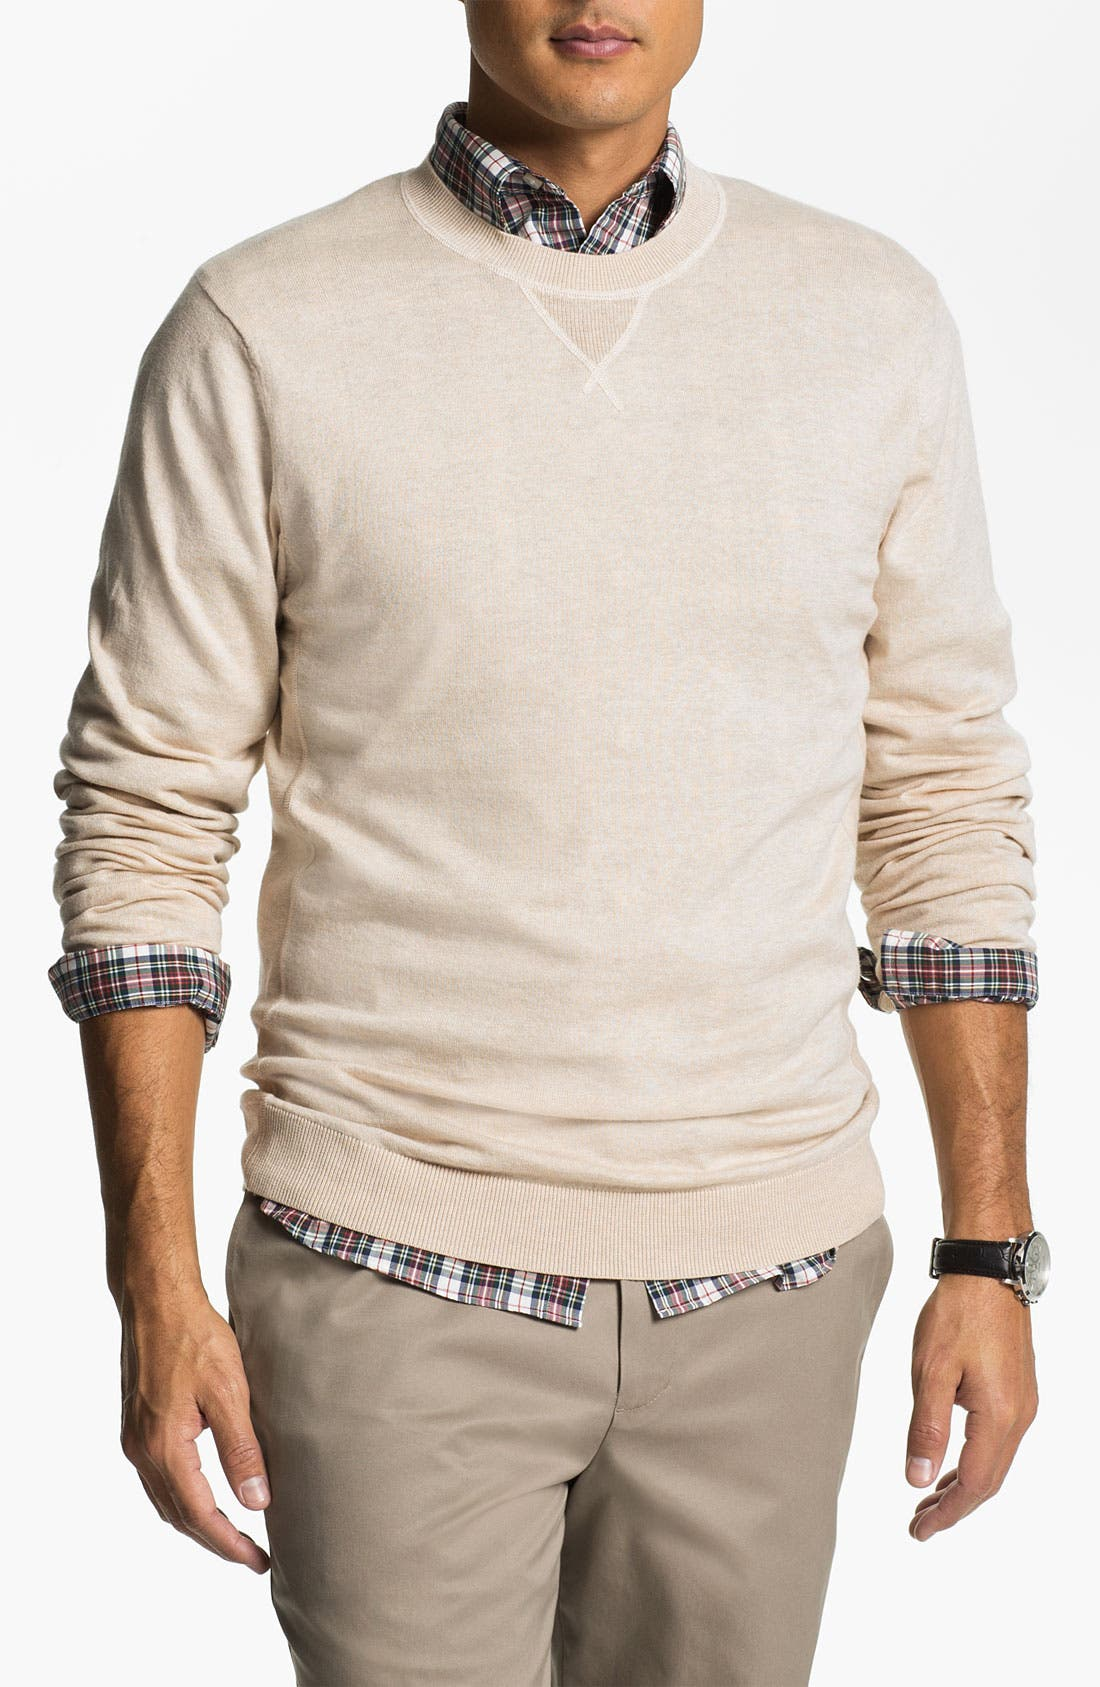 Main Image - Wallin & Bros. Pima Cotton Blend Sweater